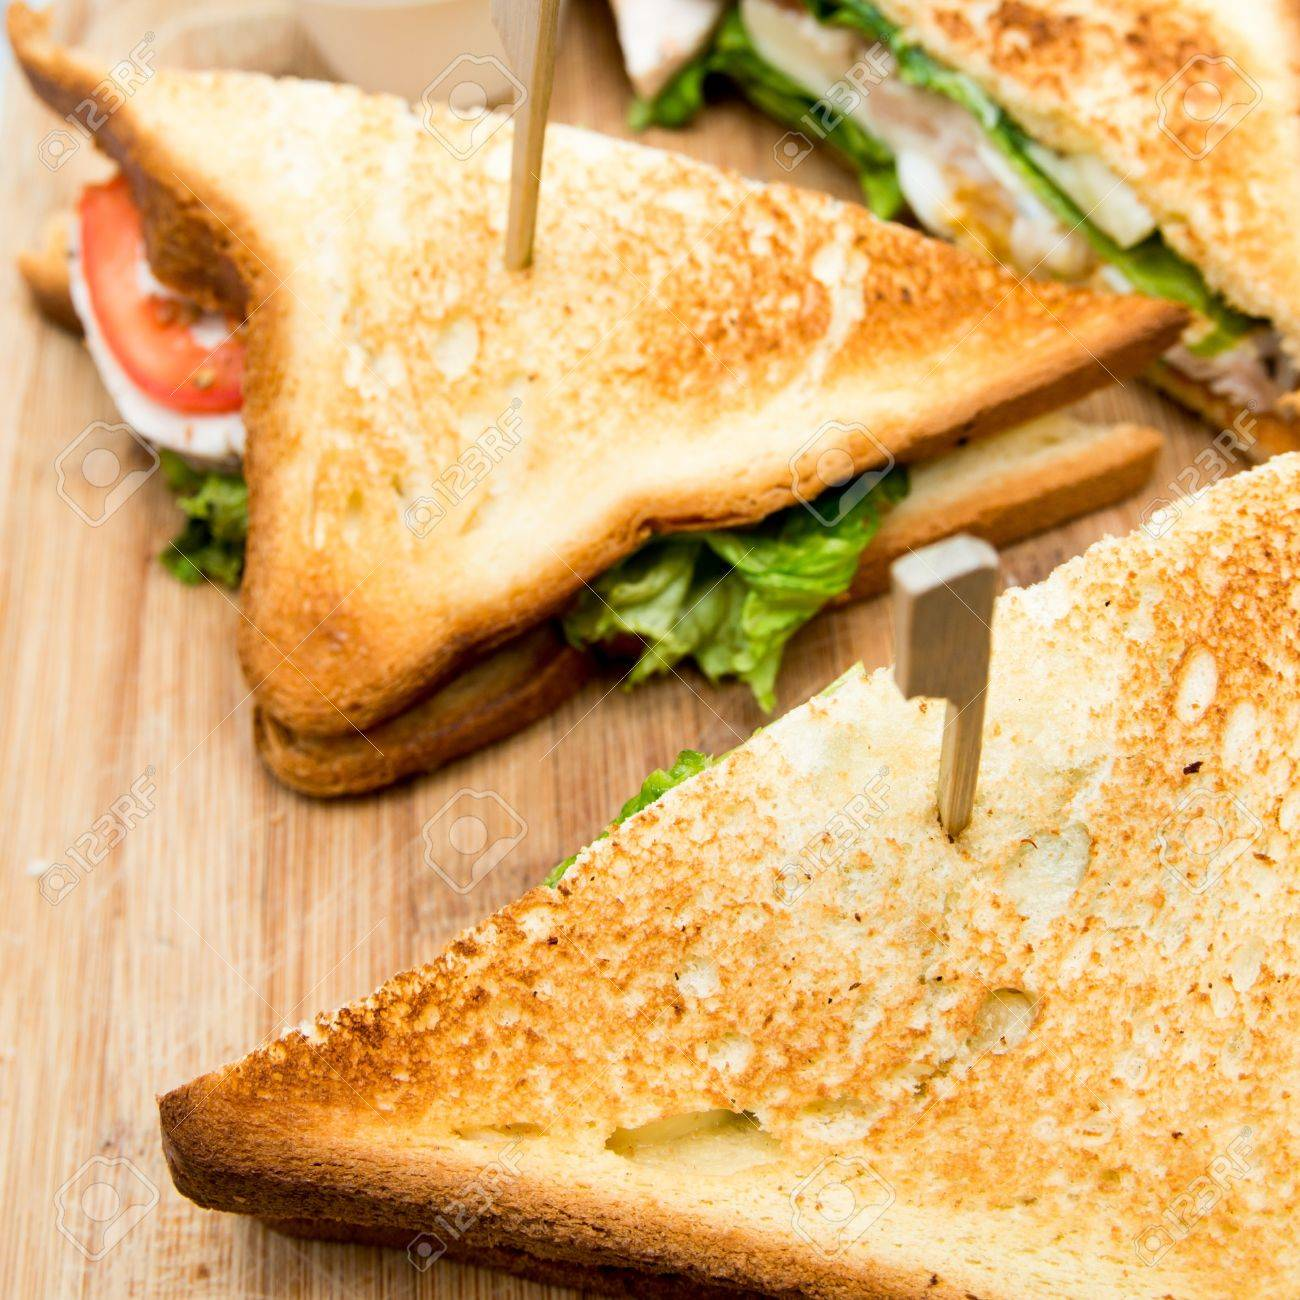 Sandwich with chicken, cheese and lettuce Stock Photo - 16450237